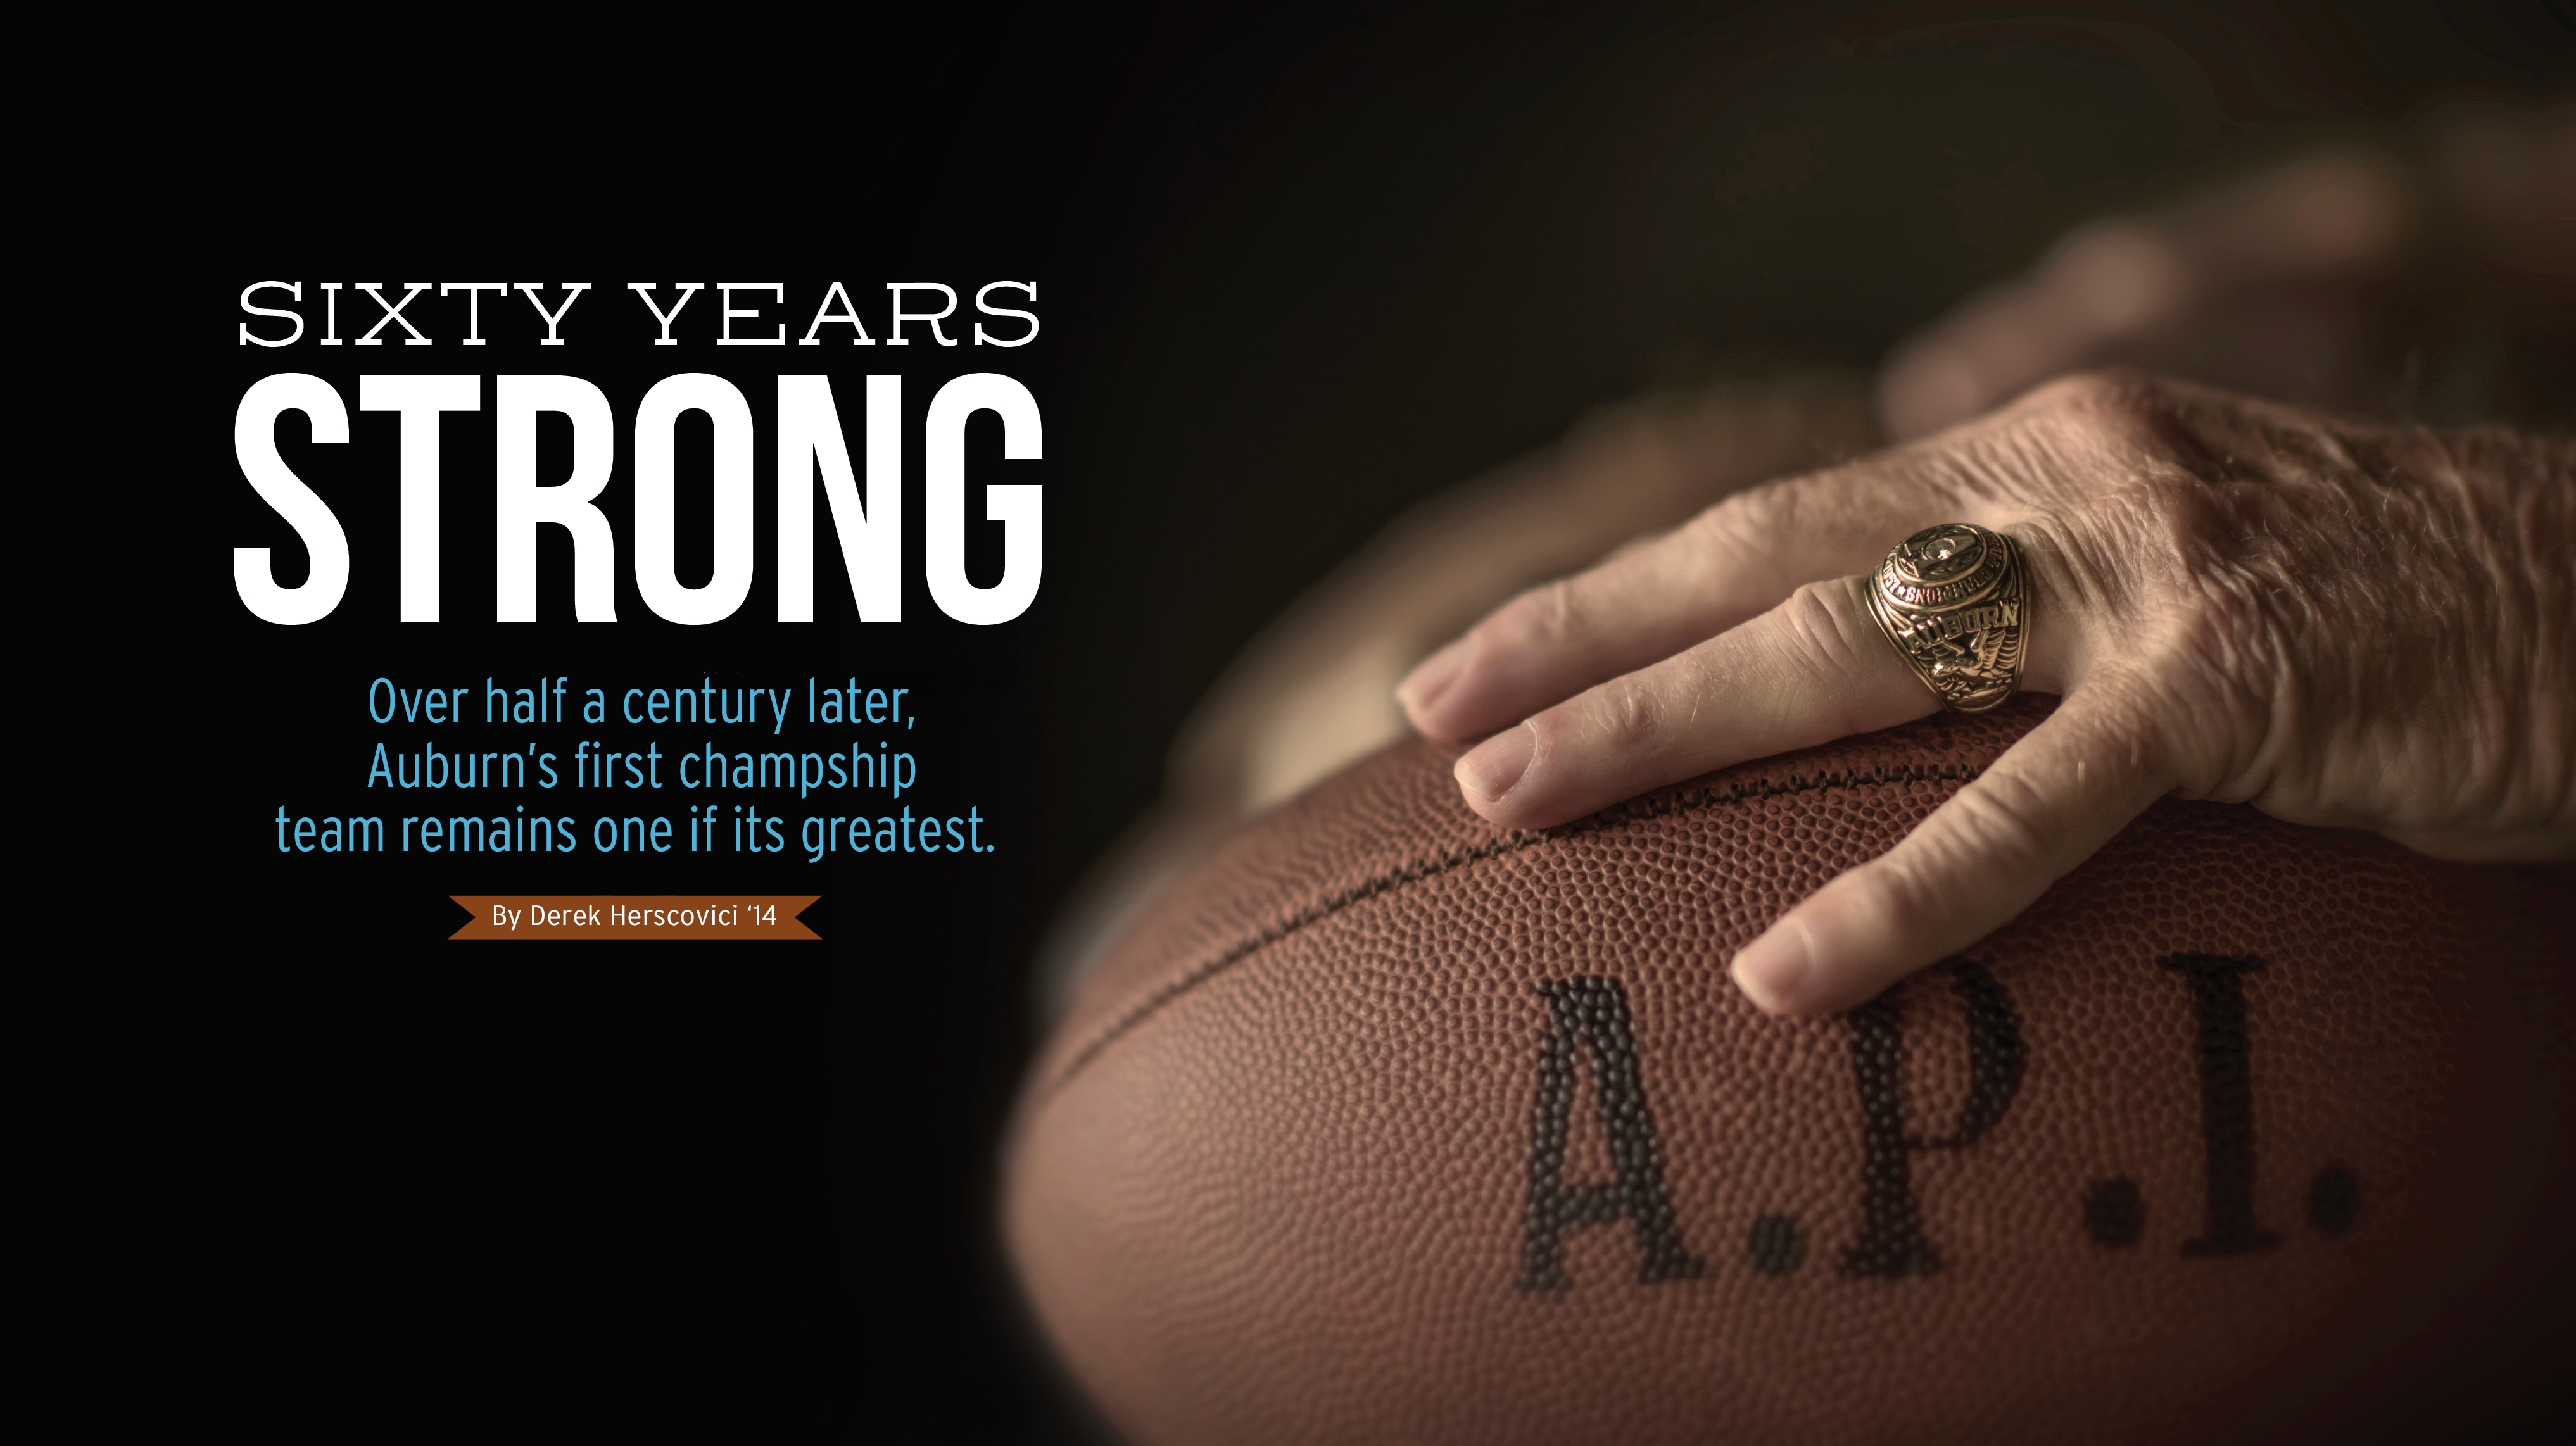 Sixty Years Strong: Over half a century later, Auburn's first championship team remains on of its greatest.